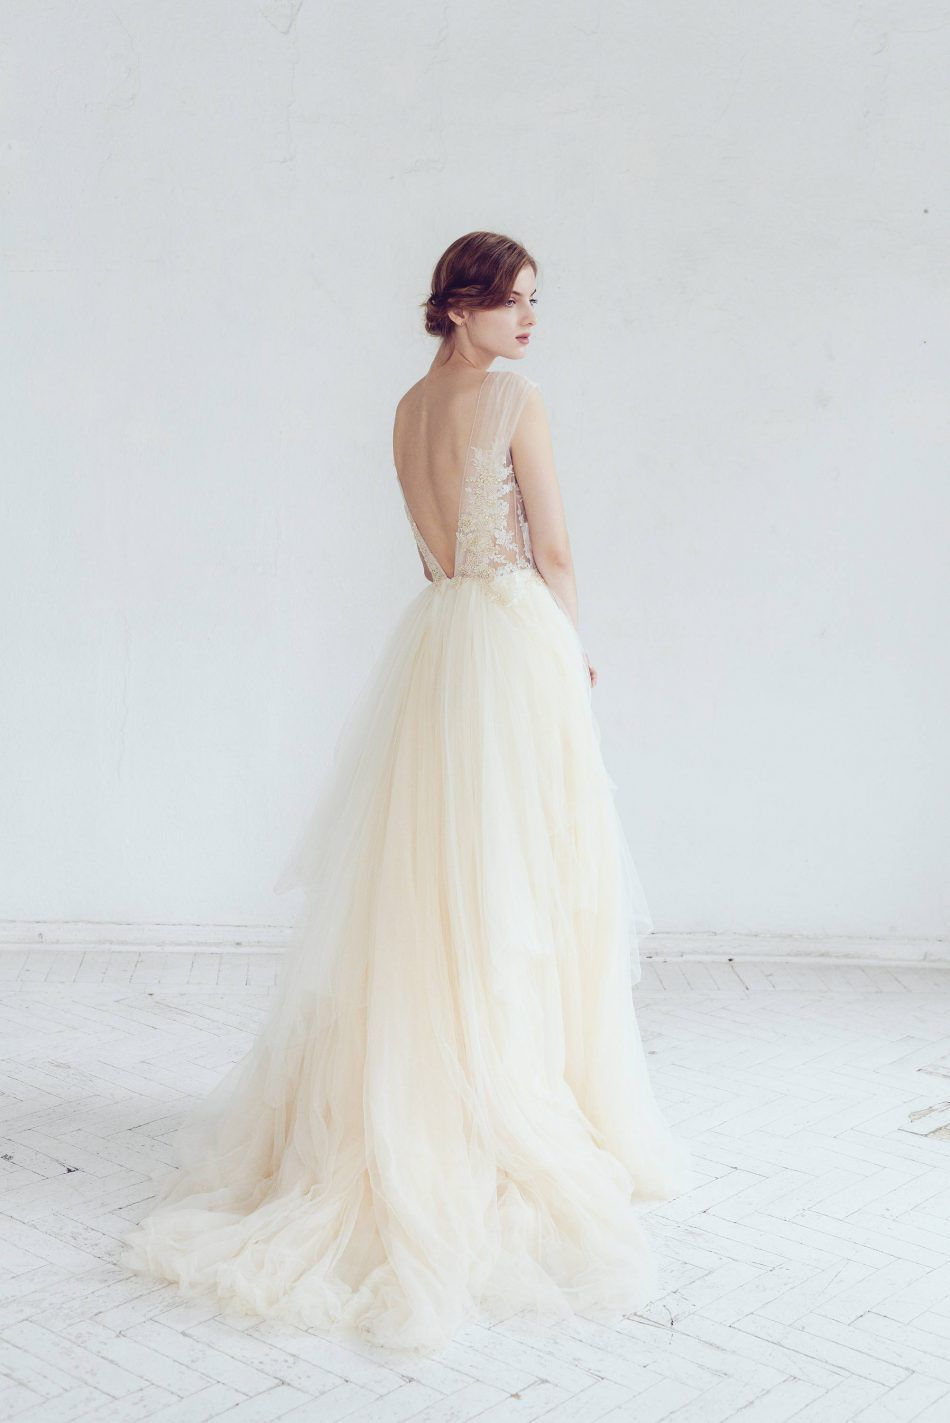 Champagne & Ivory Tulle Wedding Dress - Chic Vintage Brides : Chic ...